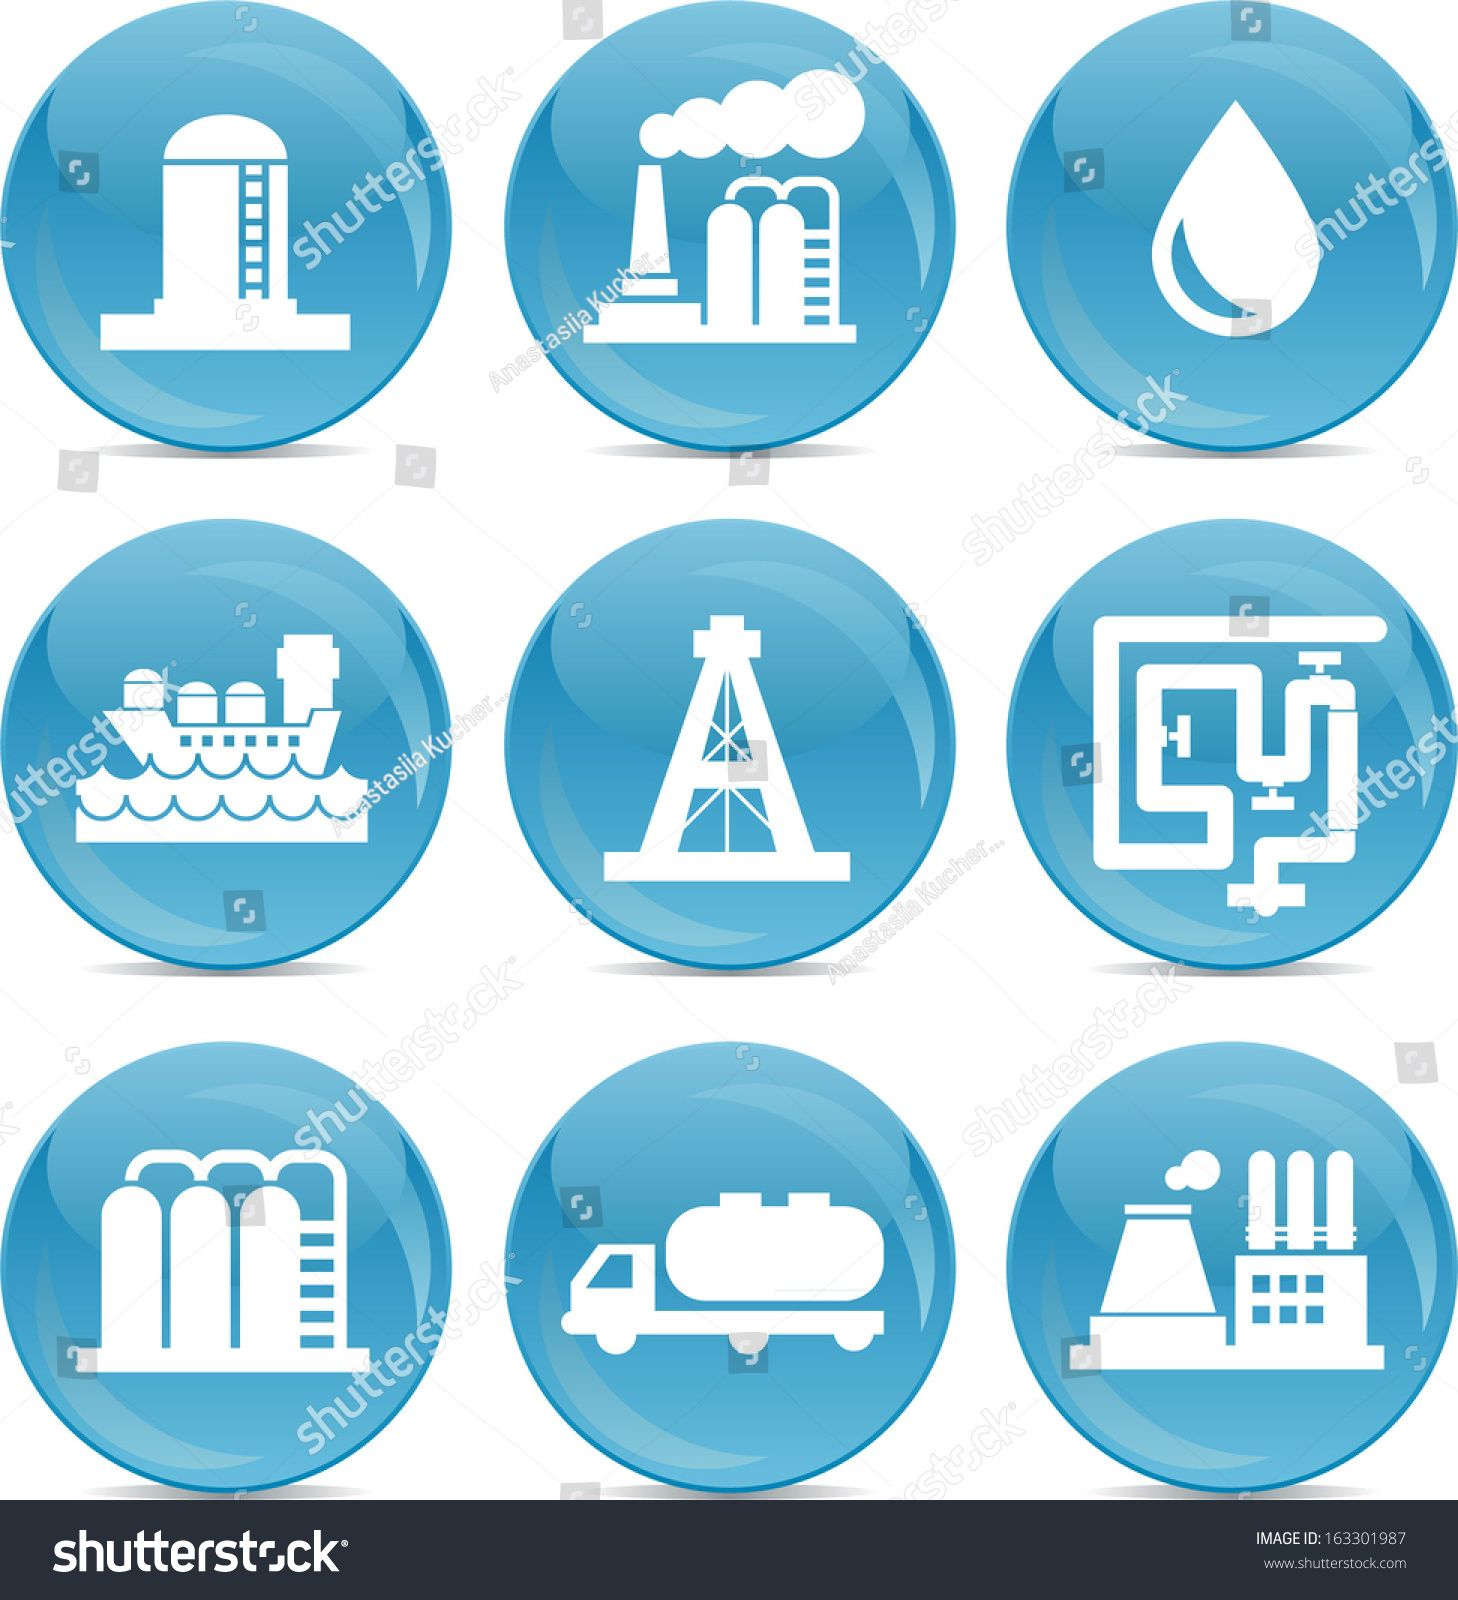 oil and gas transport and store related icons white on blue shiny balls #Ad , #AFFILIATE, #store#related#transport#oil